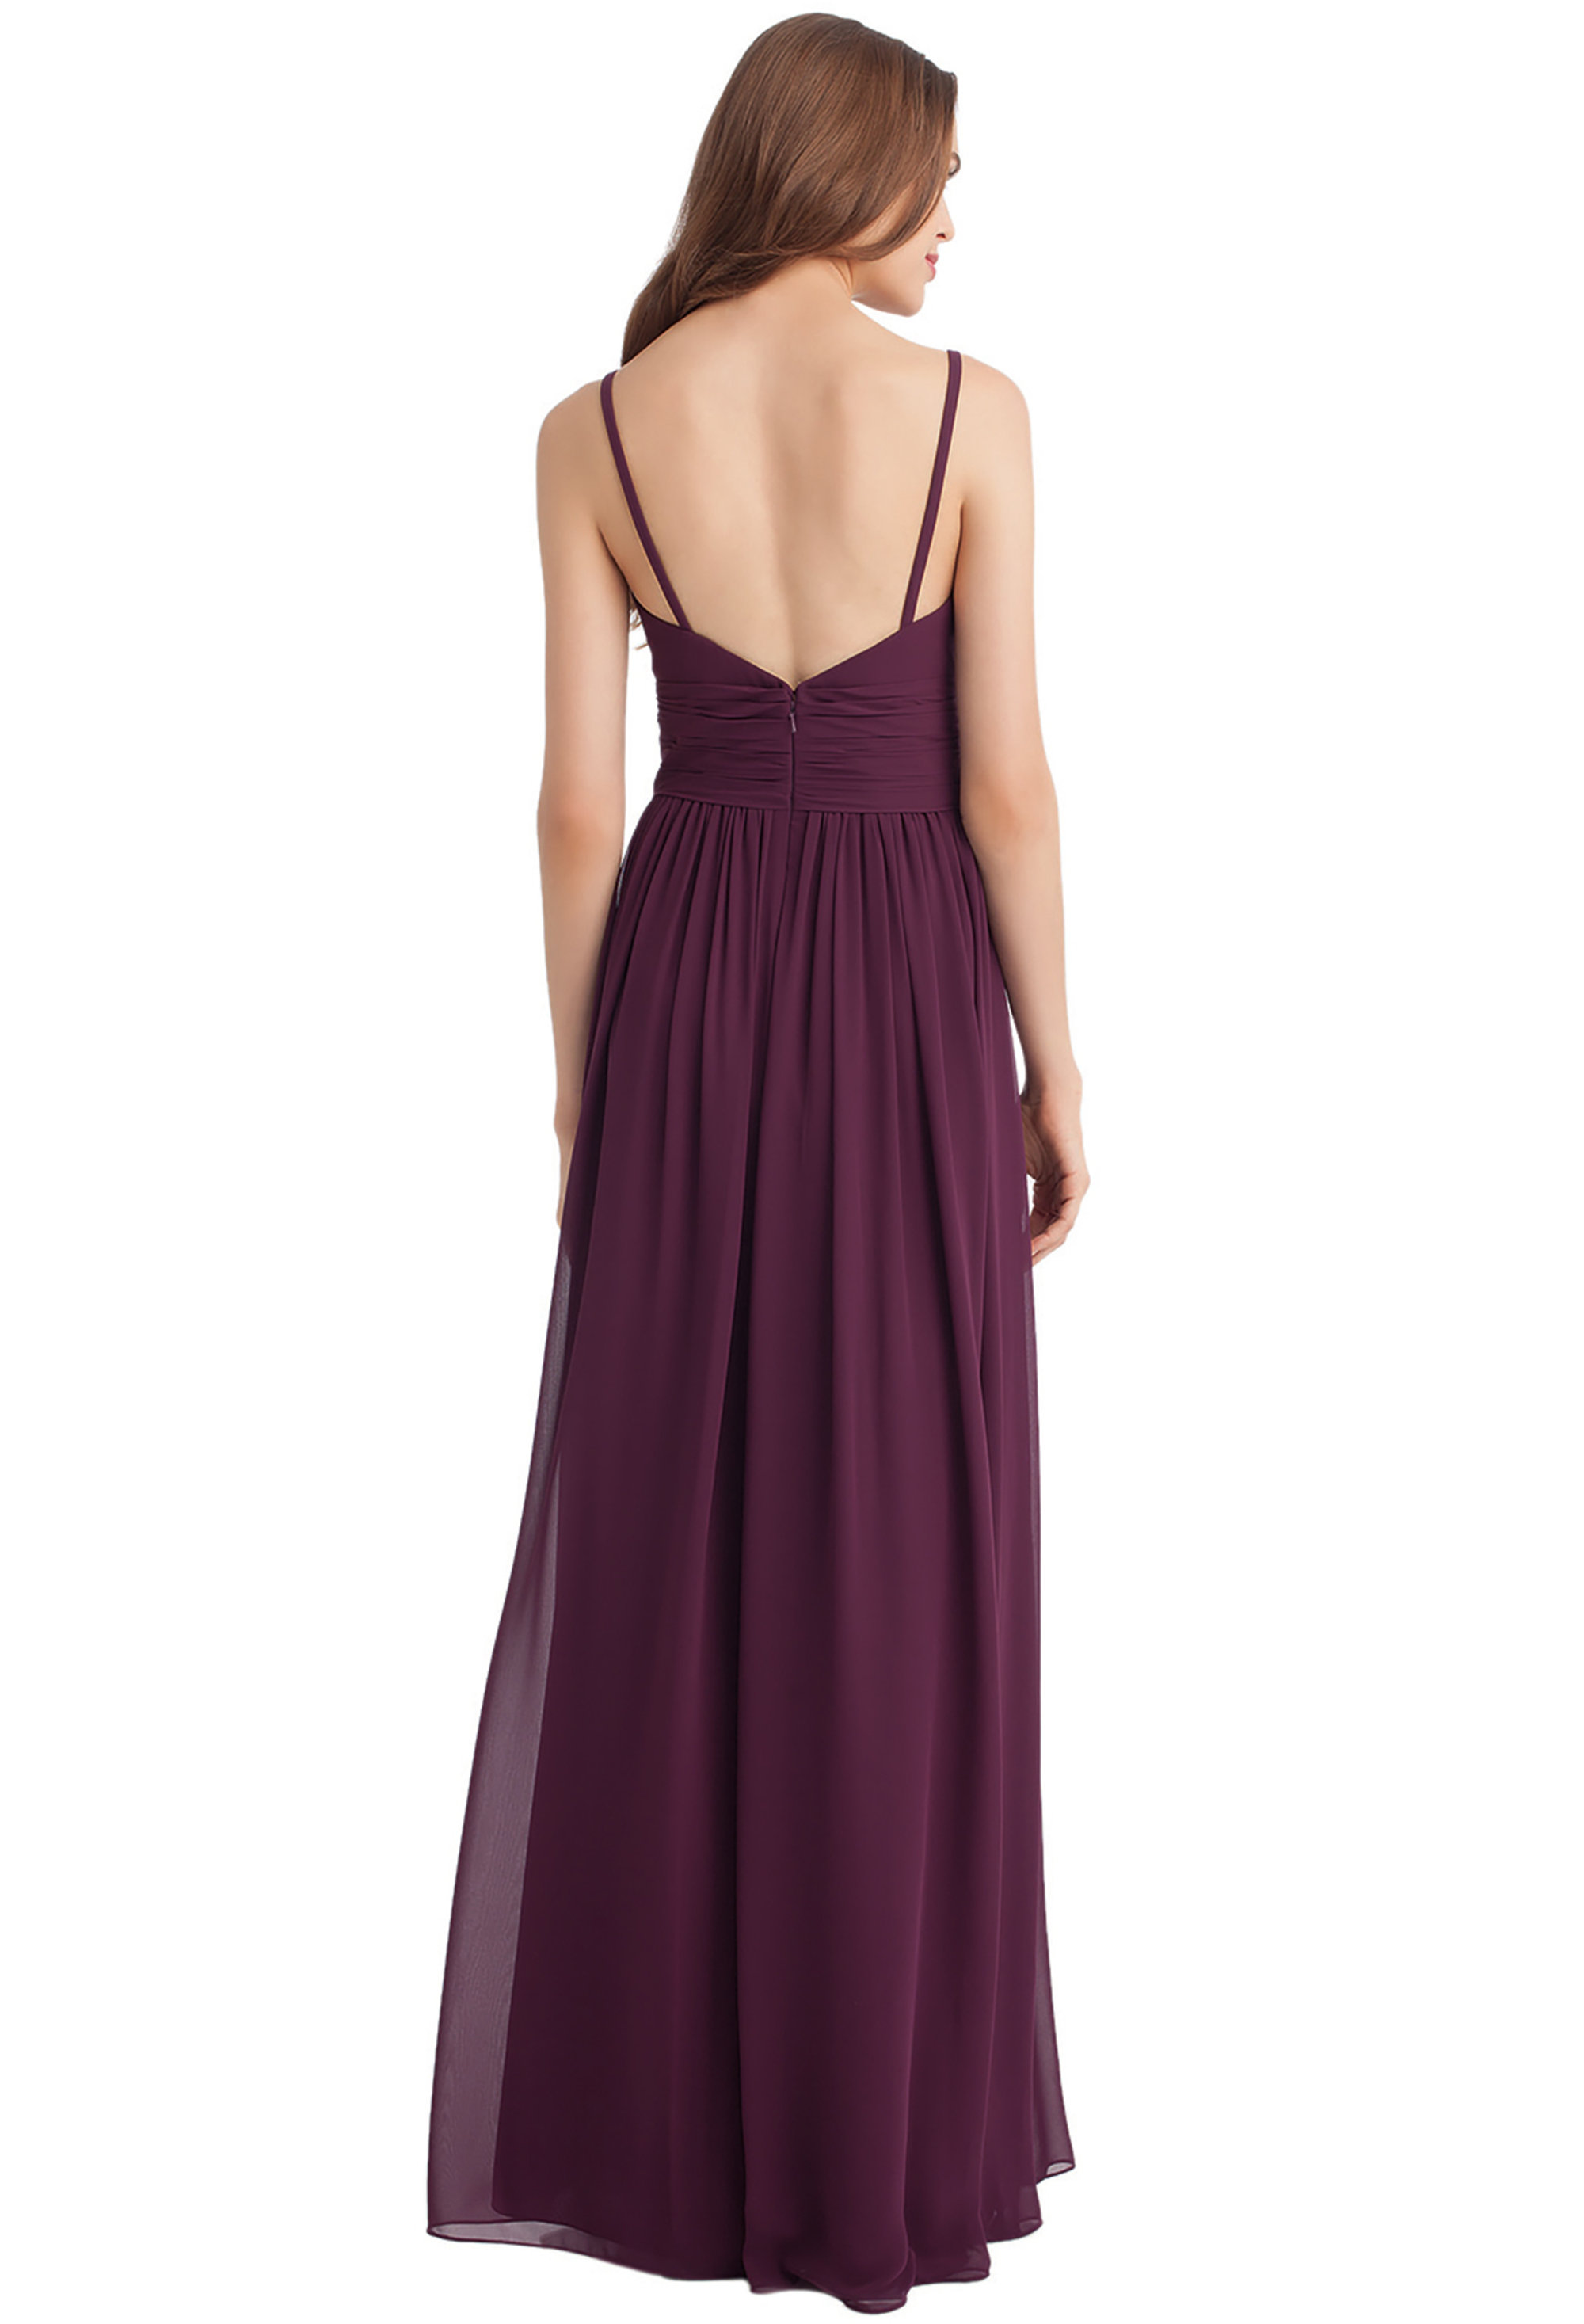 Bill Levkoff HORIZON Chiffon Sweetheart A-line gown, $216.00 Back